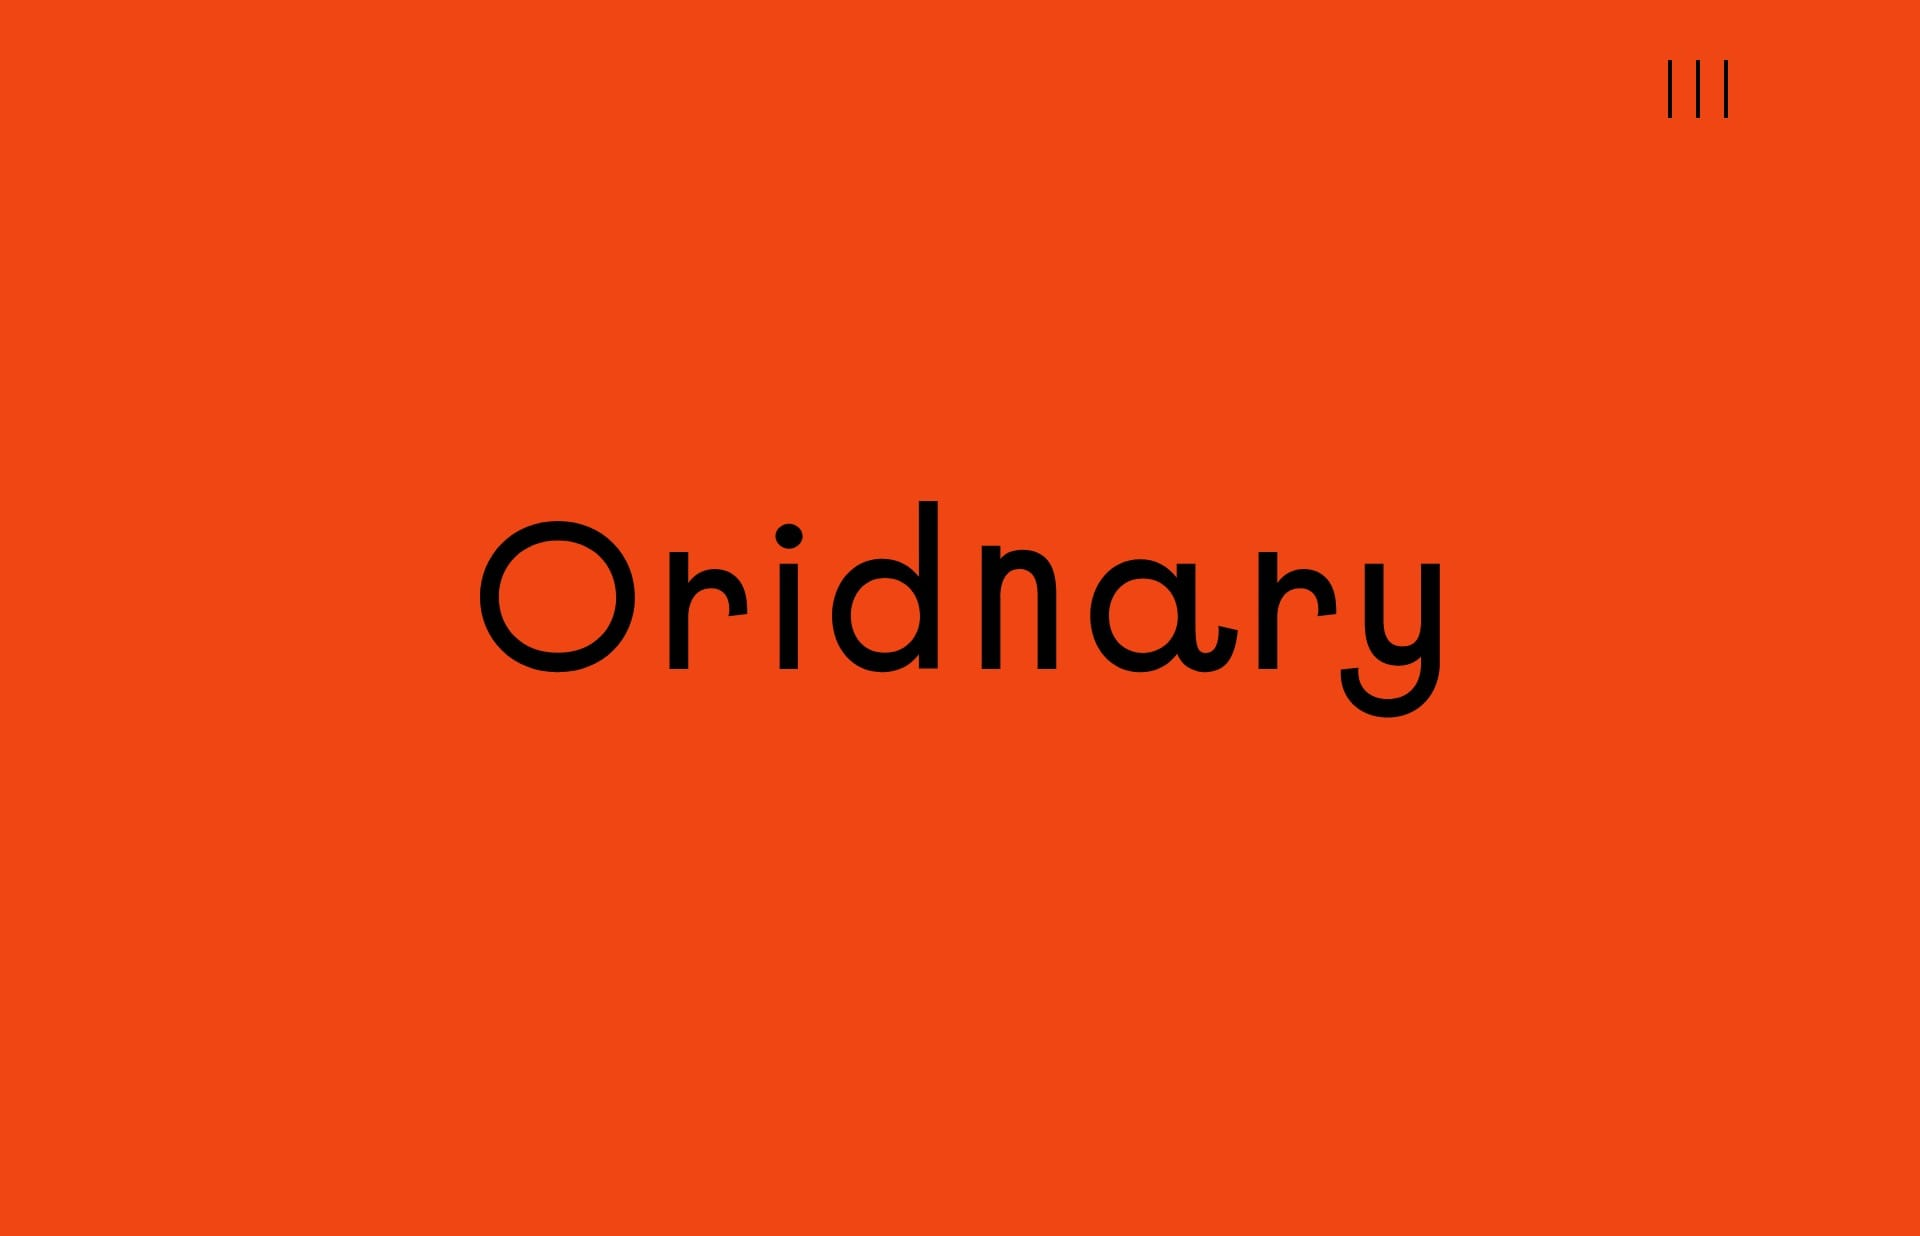 Screenshot of the website Oridnary, featured on The Gallery, a curated collection of minimal websites